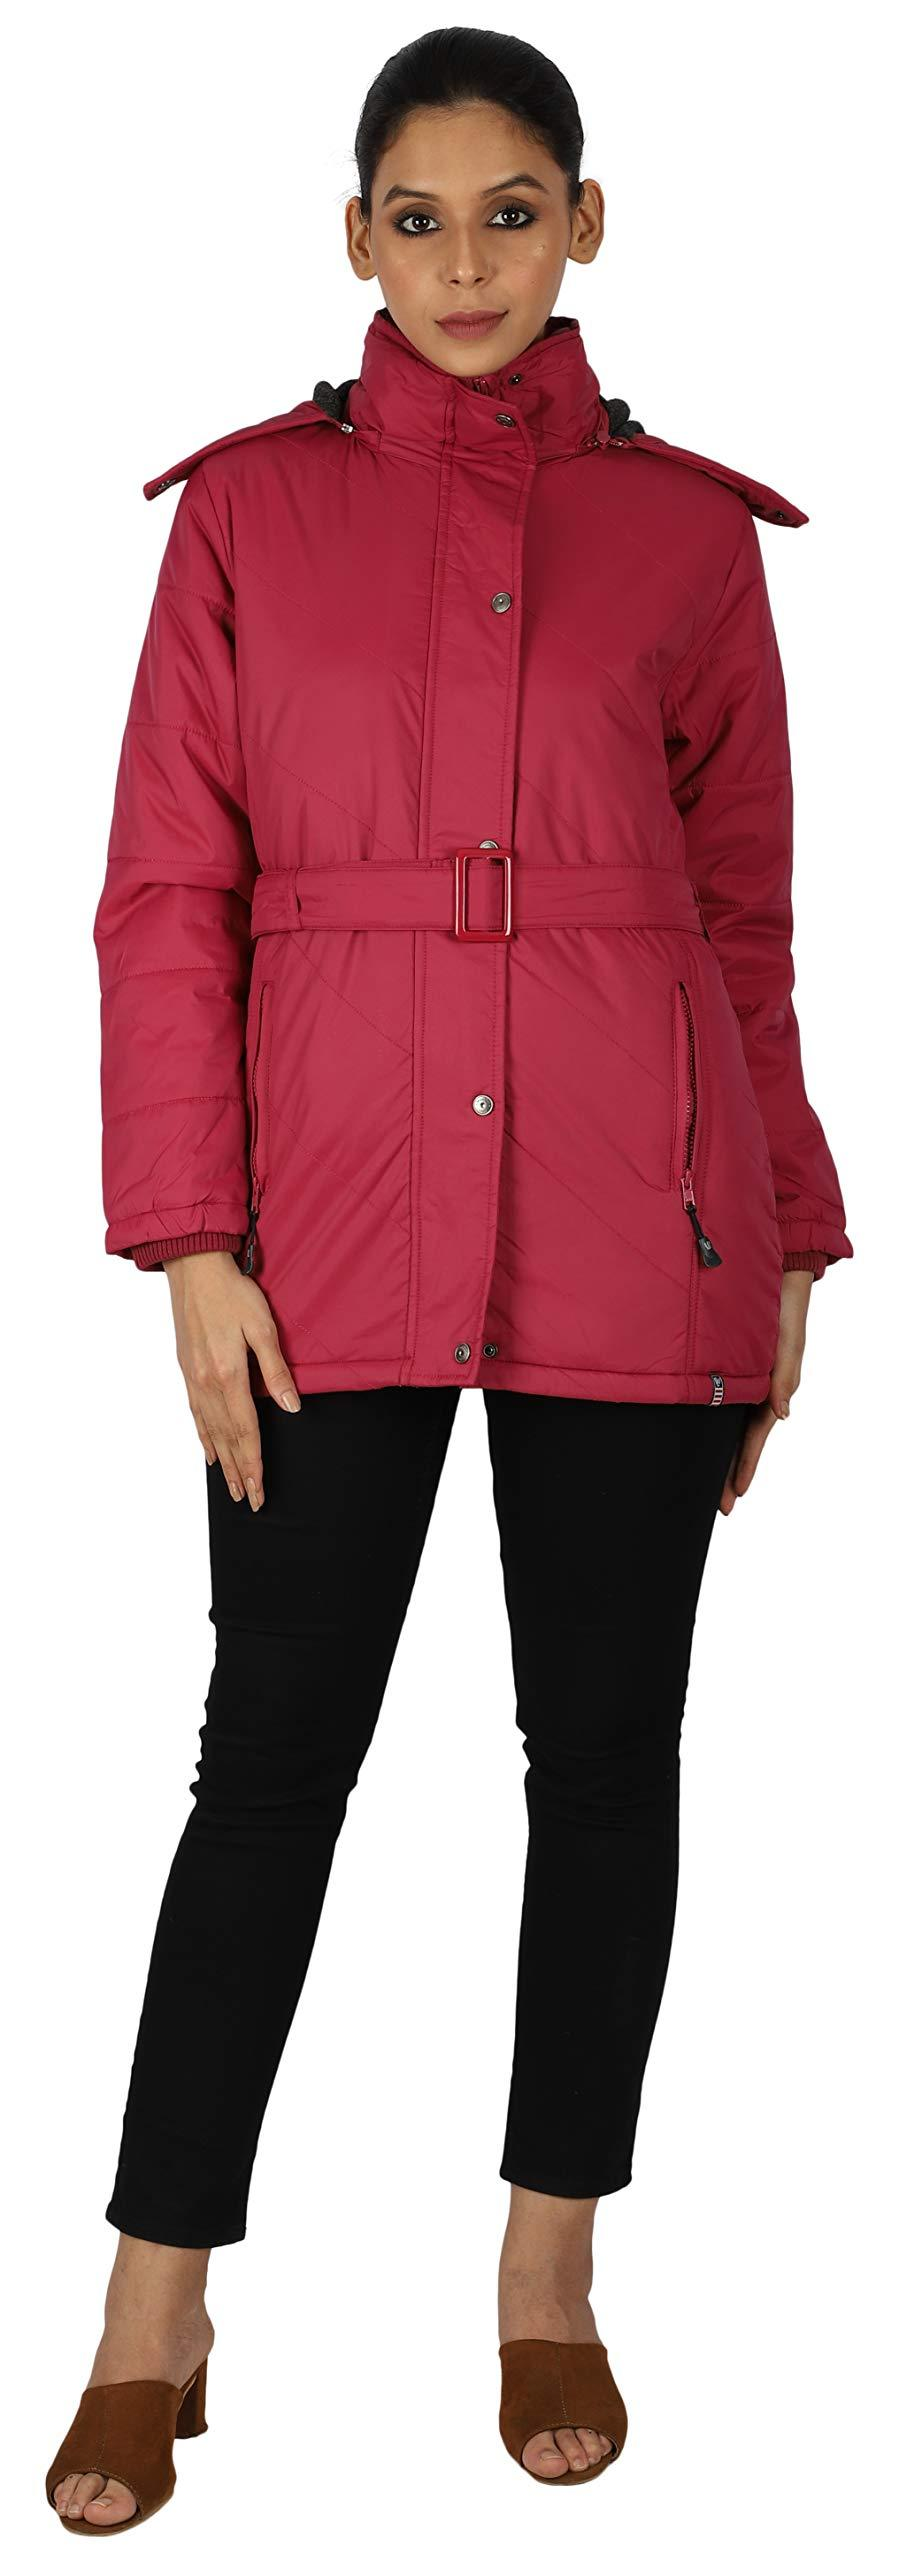 Romano nx Women's Waterproof Snow Jacket for Minus Degree romanonx.com 3XL